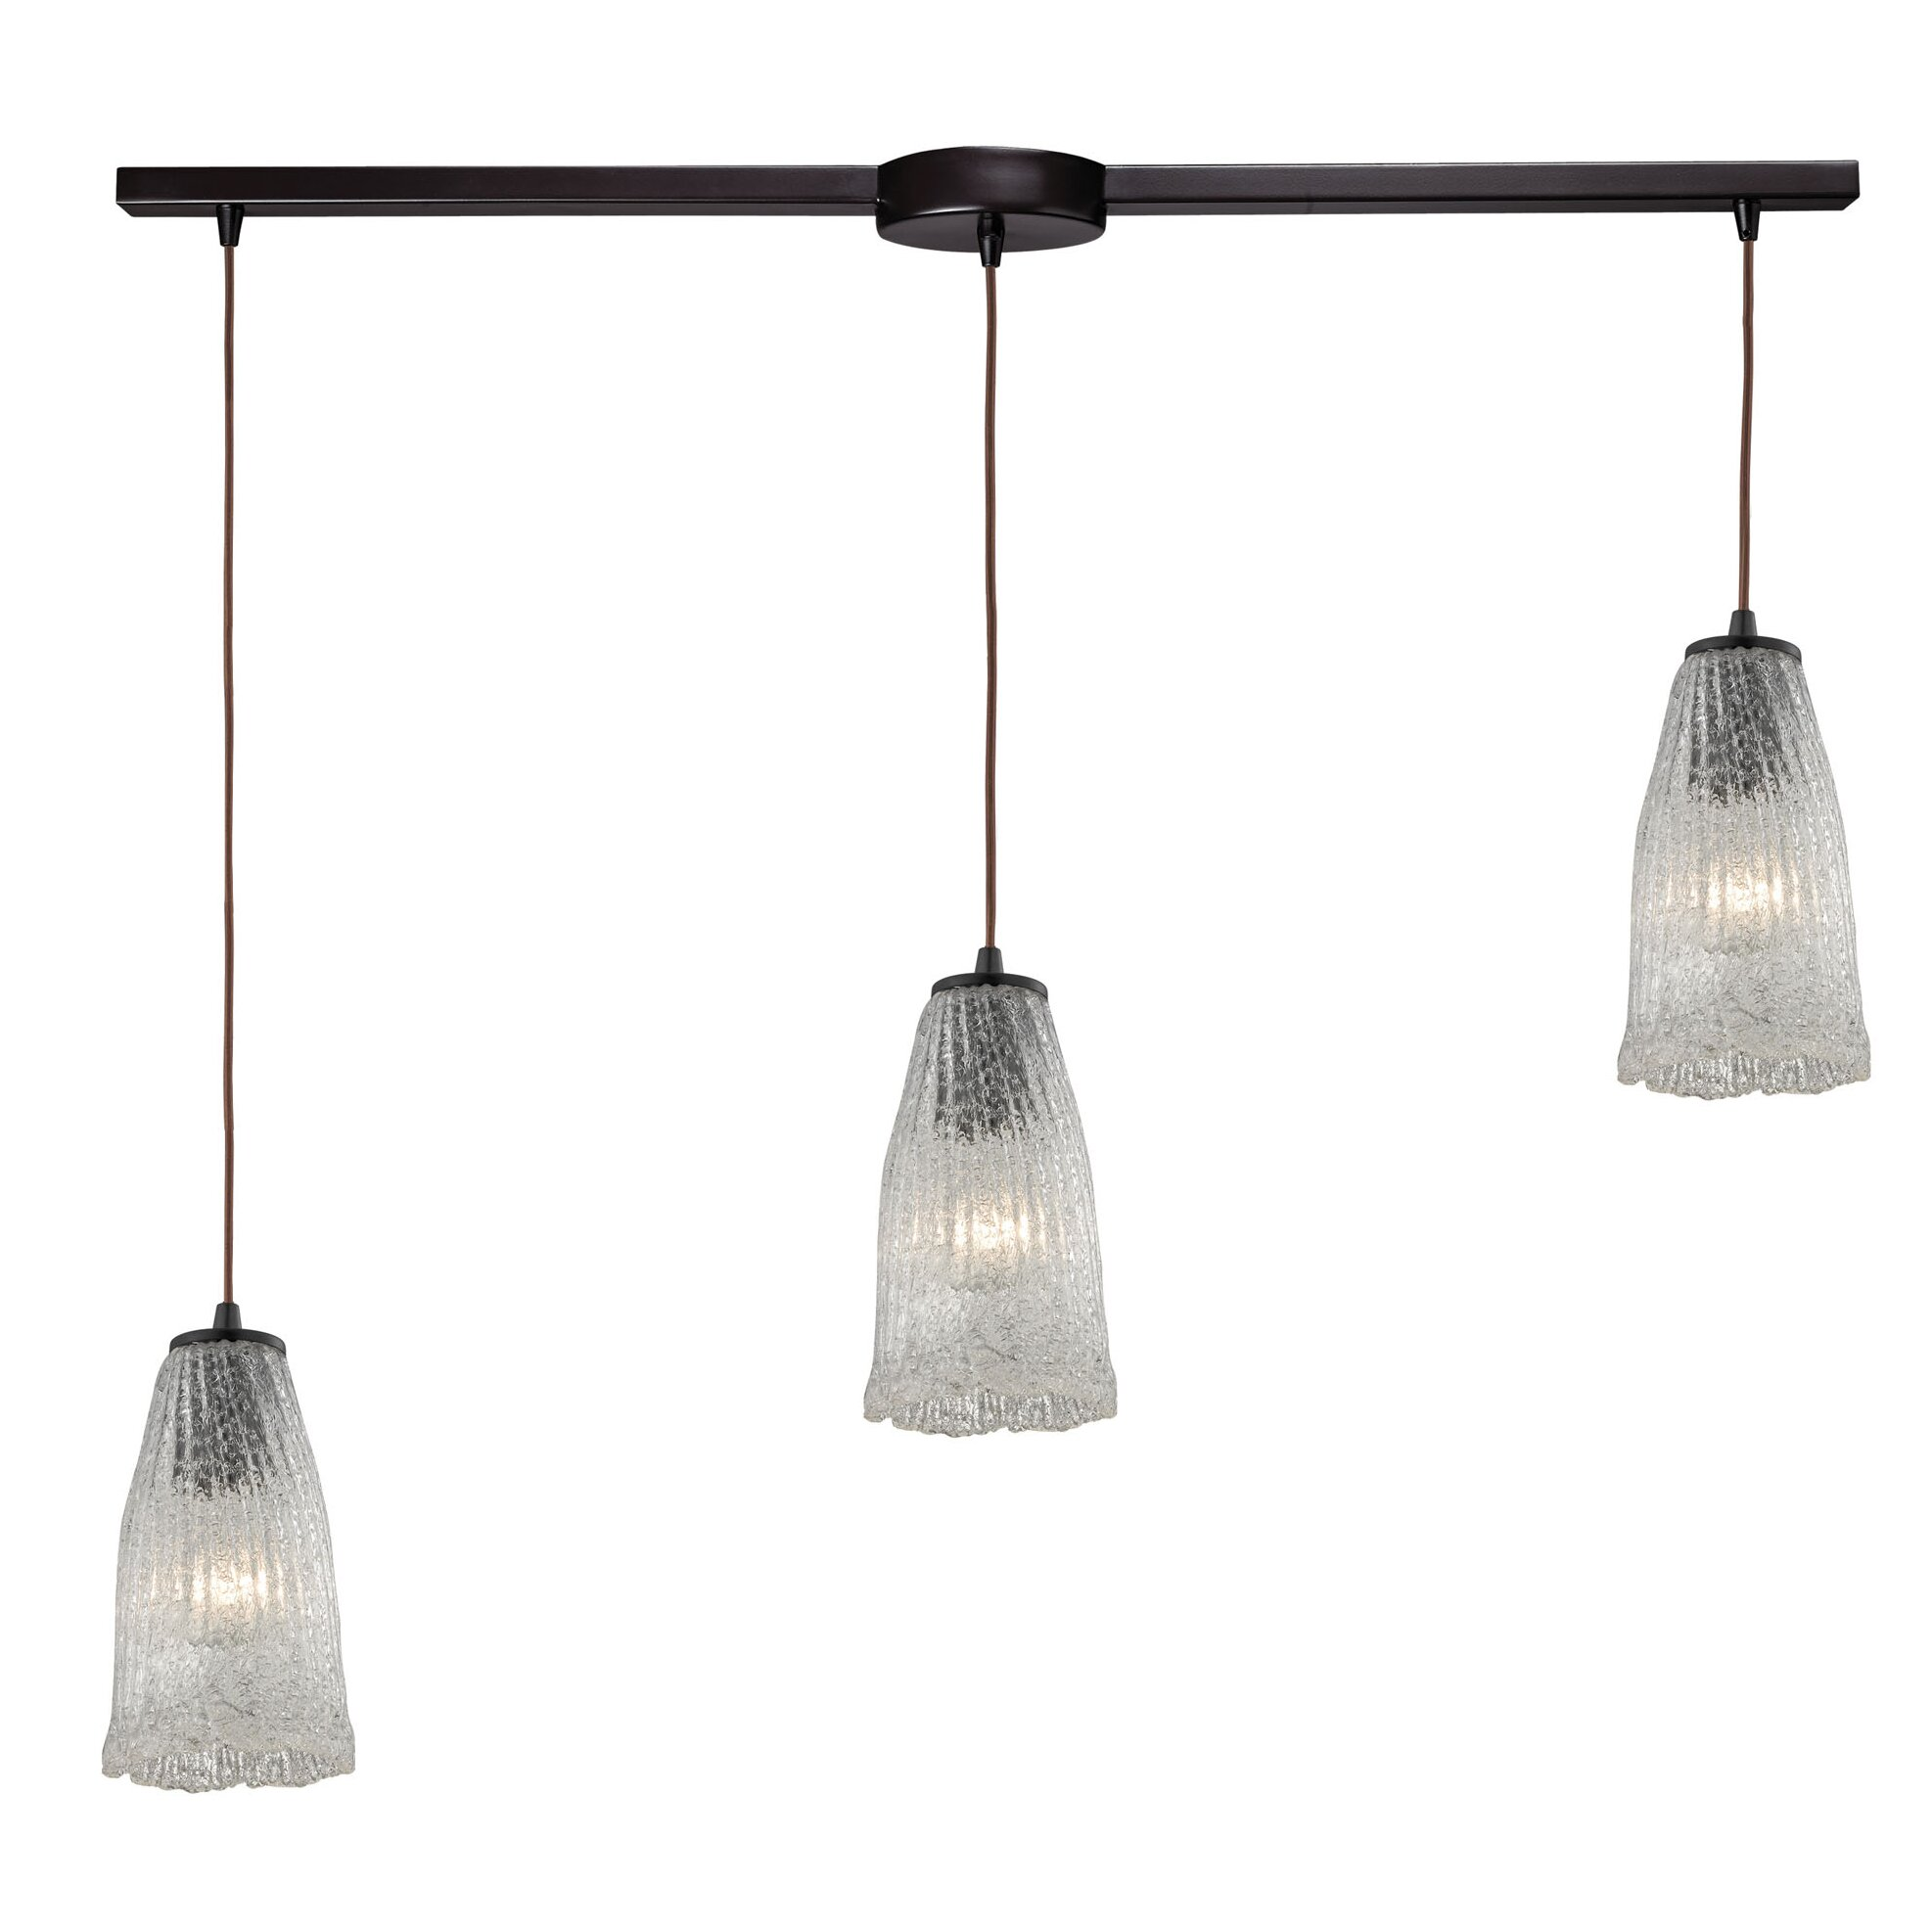 3 light kitchen island pendant wayfair for Kitchen island lighting pendants